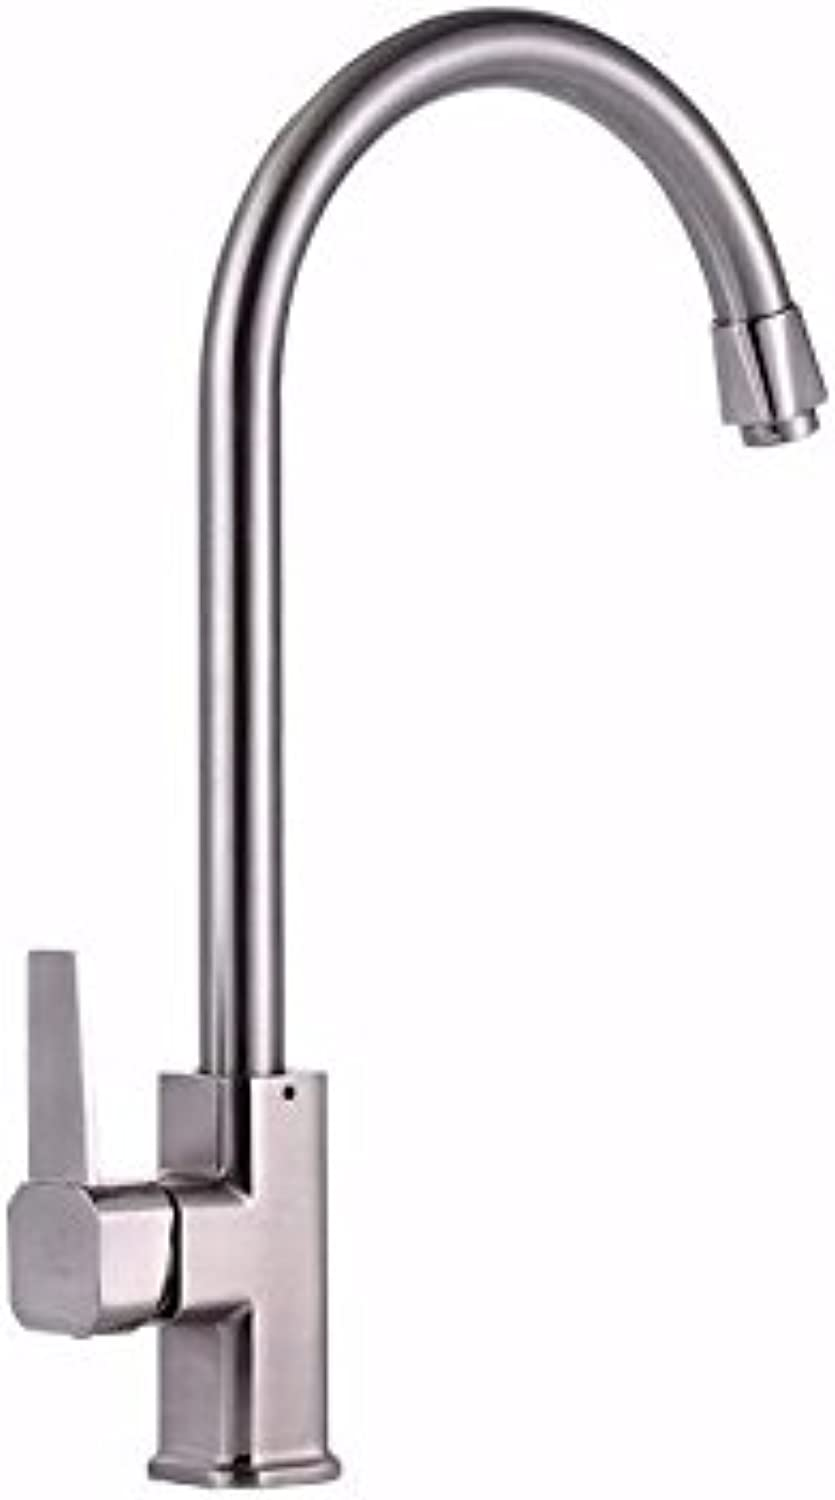 Commercial Single Lever Pull Down Kitchen Sink Faucet Brass Constructed Polished Single Hot and Cold Water Faucet, Kitchen Faucet, Kitchen Dish Hot and Cold Faucet